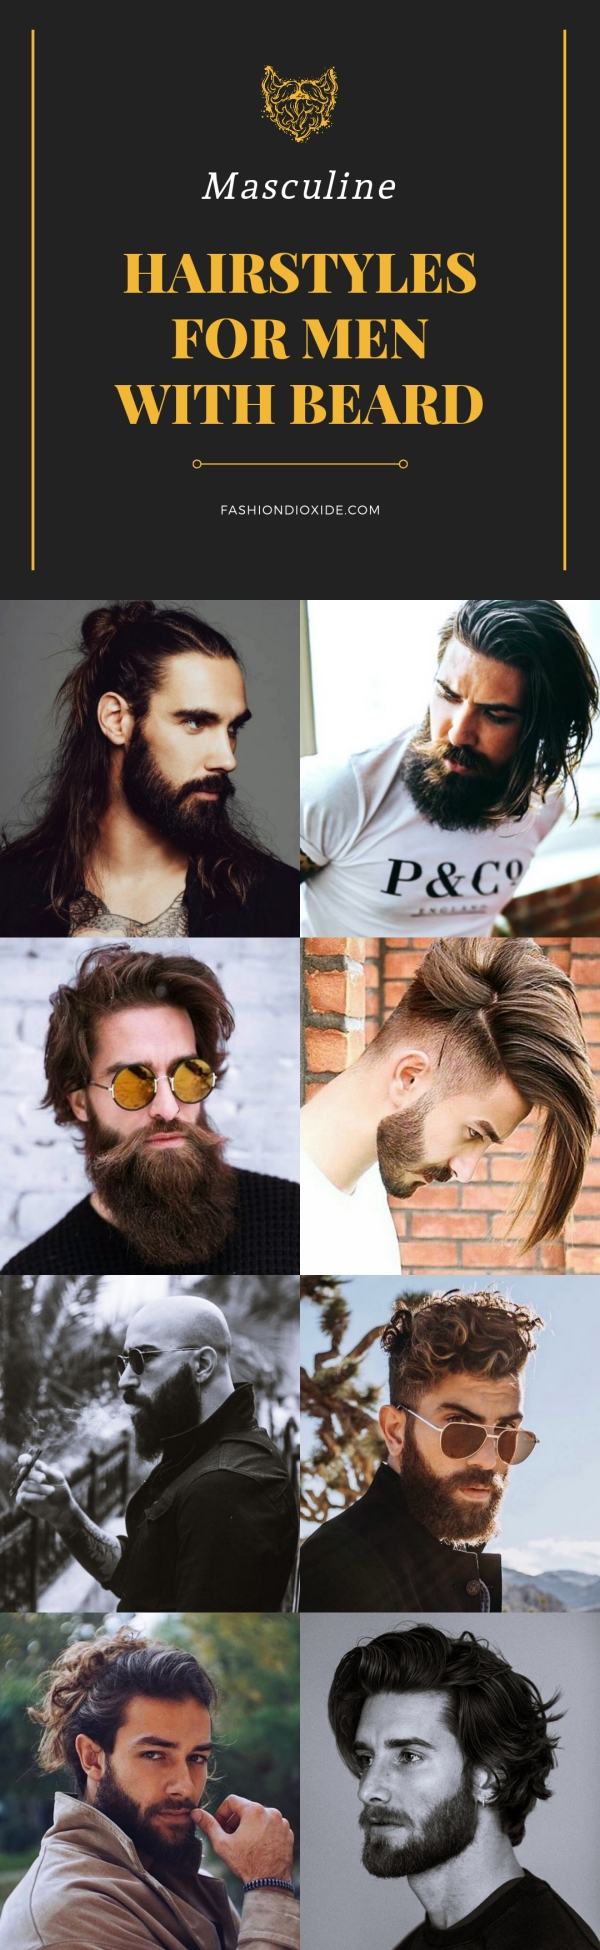 Masculine Hairstyles for Men with Beard